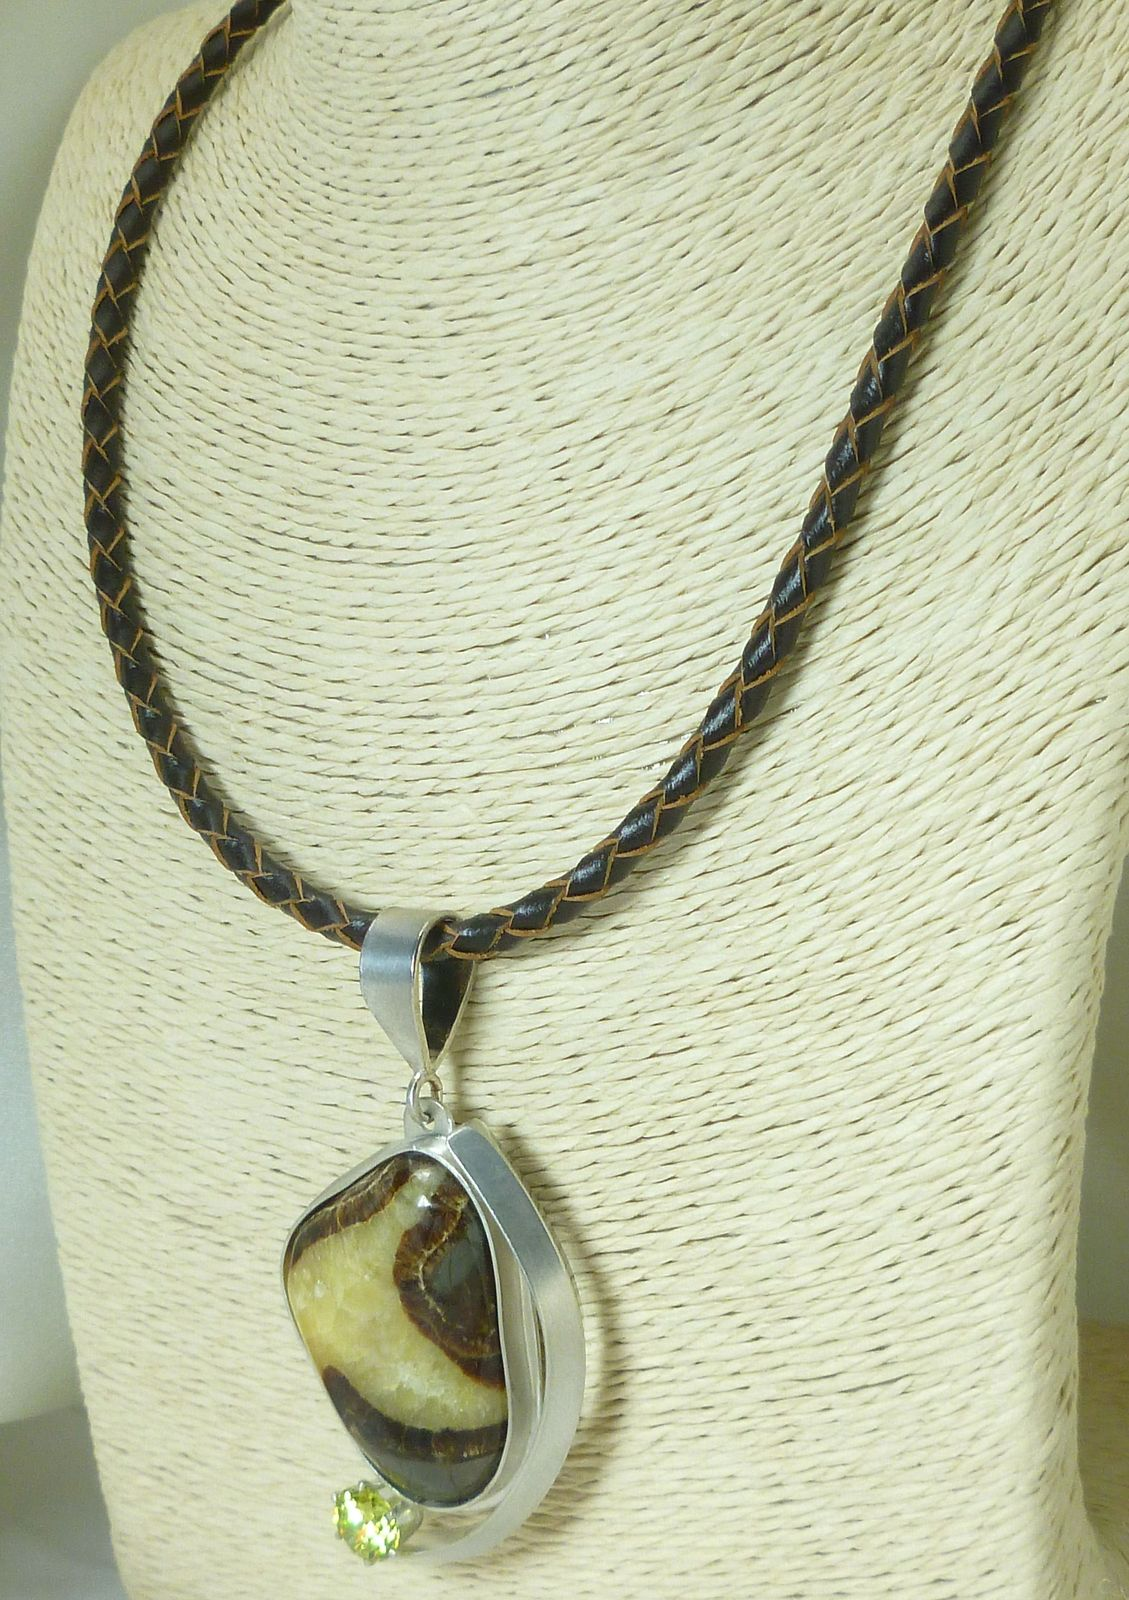 Utah Septarian Cabochon Gemstone Sterling Pendant with Braided Leather Cord